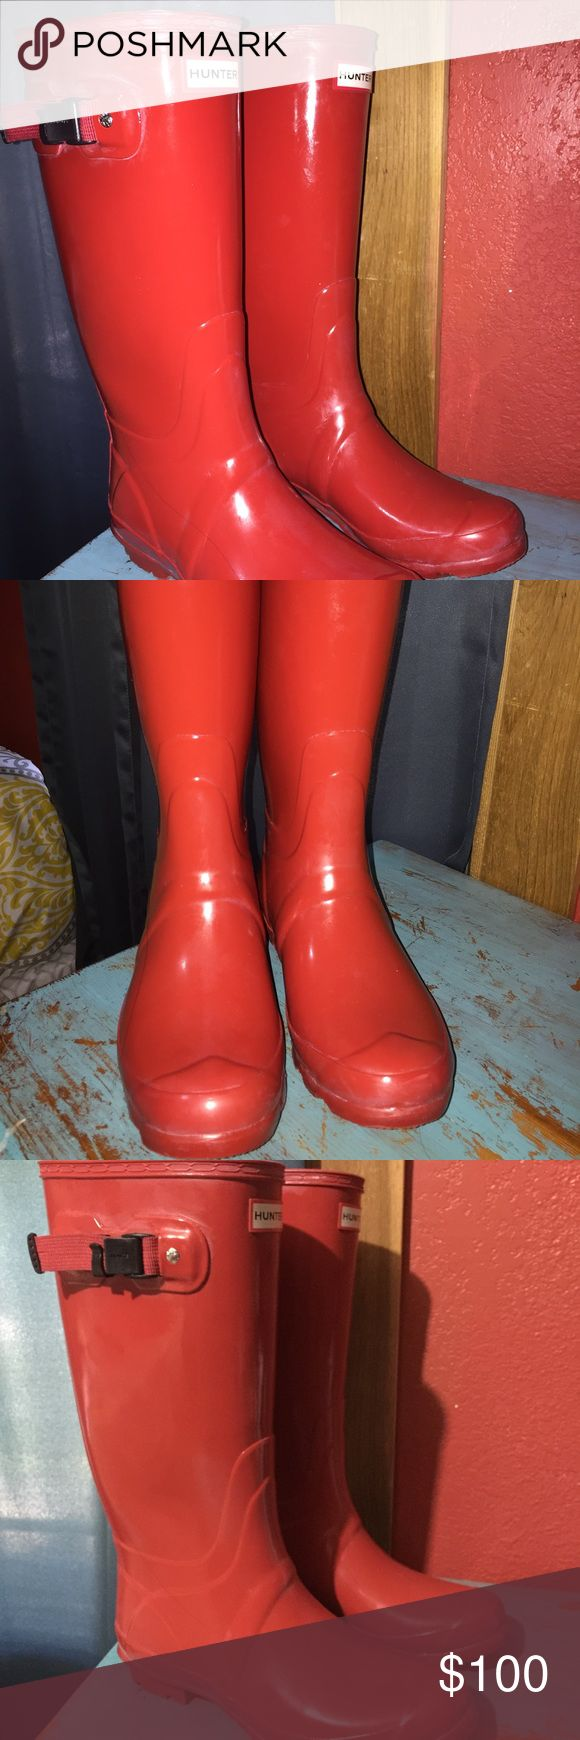 Hunter huntress red boots!❤️ Super cute worn once just too big for me. Has the extended wide calf! Would fit a 9 Need gone ASAP!! Hunter Boots Shoes Winter & Rain Boots